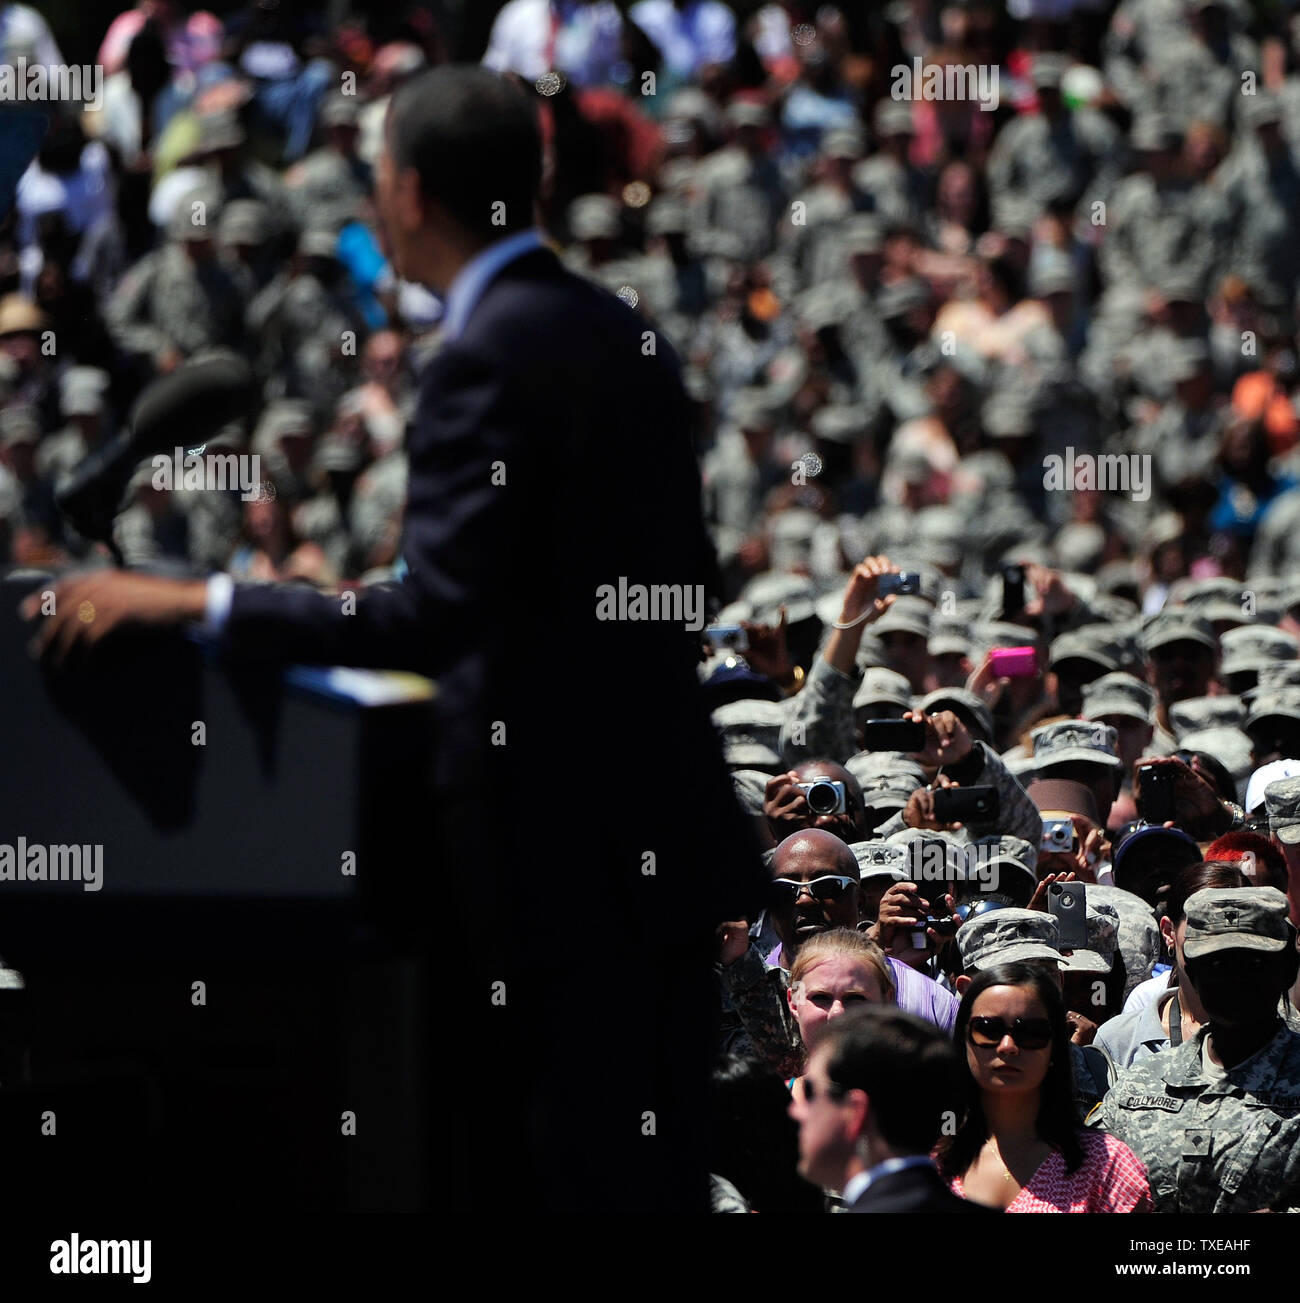 Members of the military take photos of President Barack Obama as he discusses changes to the GI Bill at the headquarters for the Army's 3rd Infantry Division in Fort Stewart, Georgia on April 27, 2012.   UPI/David Tulis - Stock Image